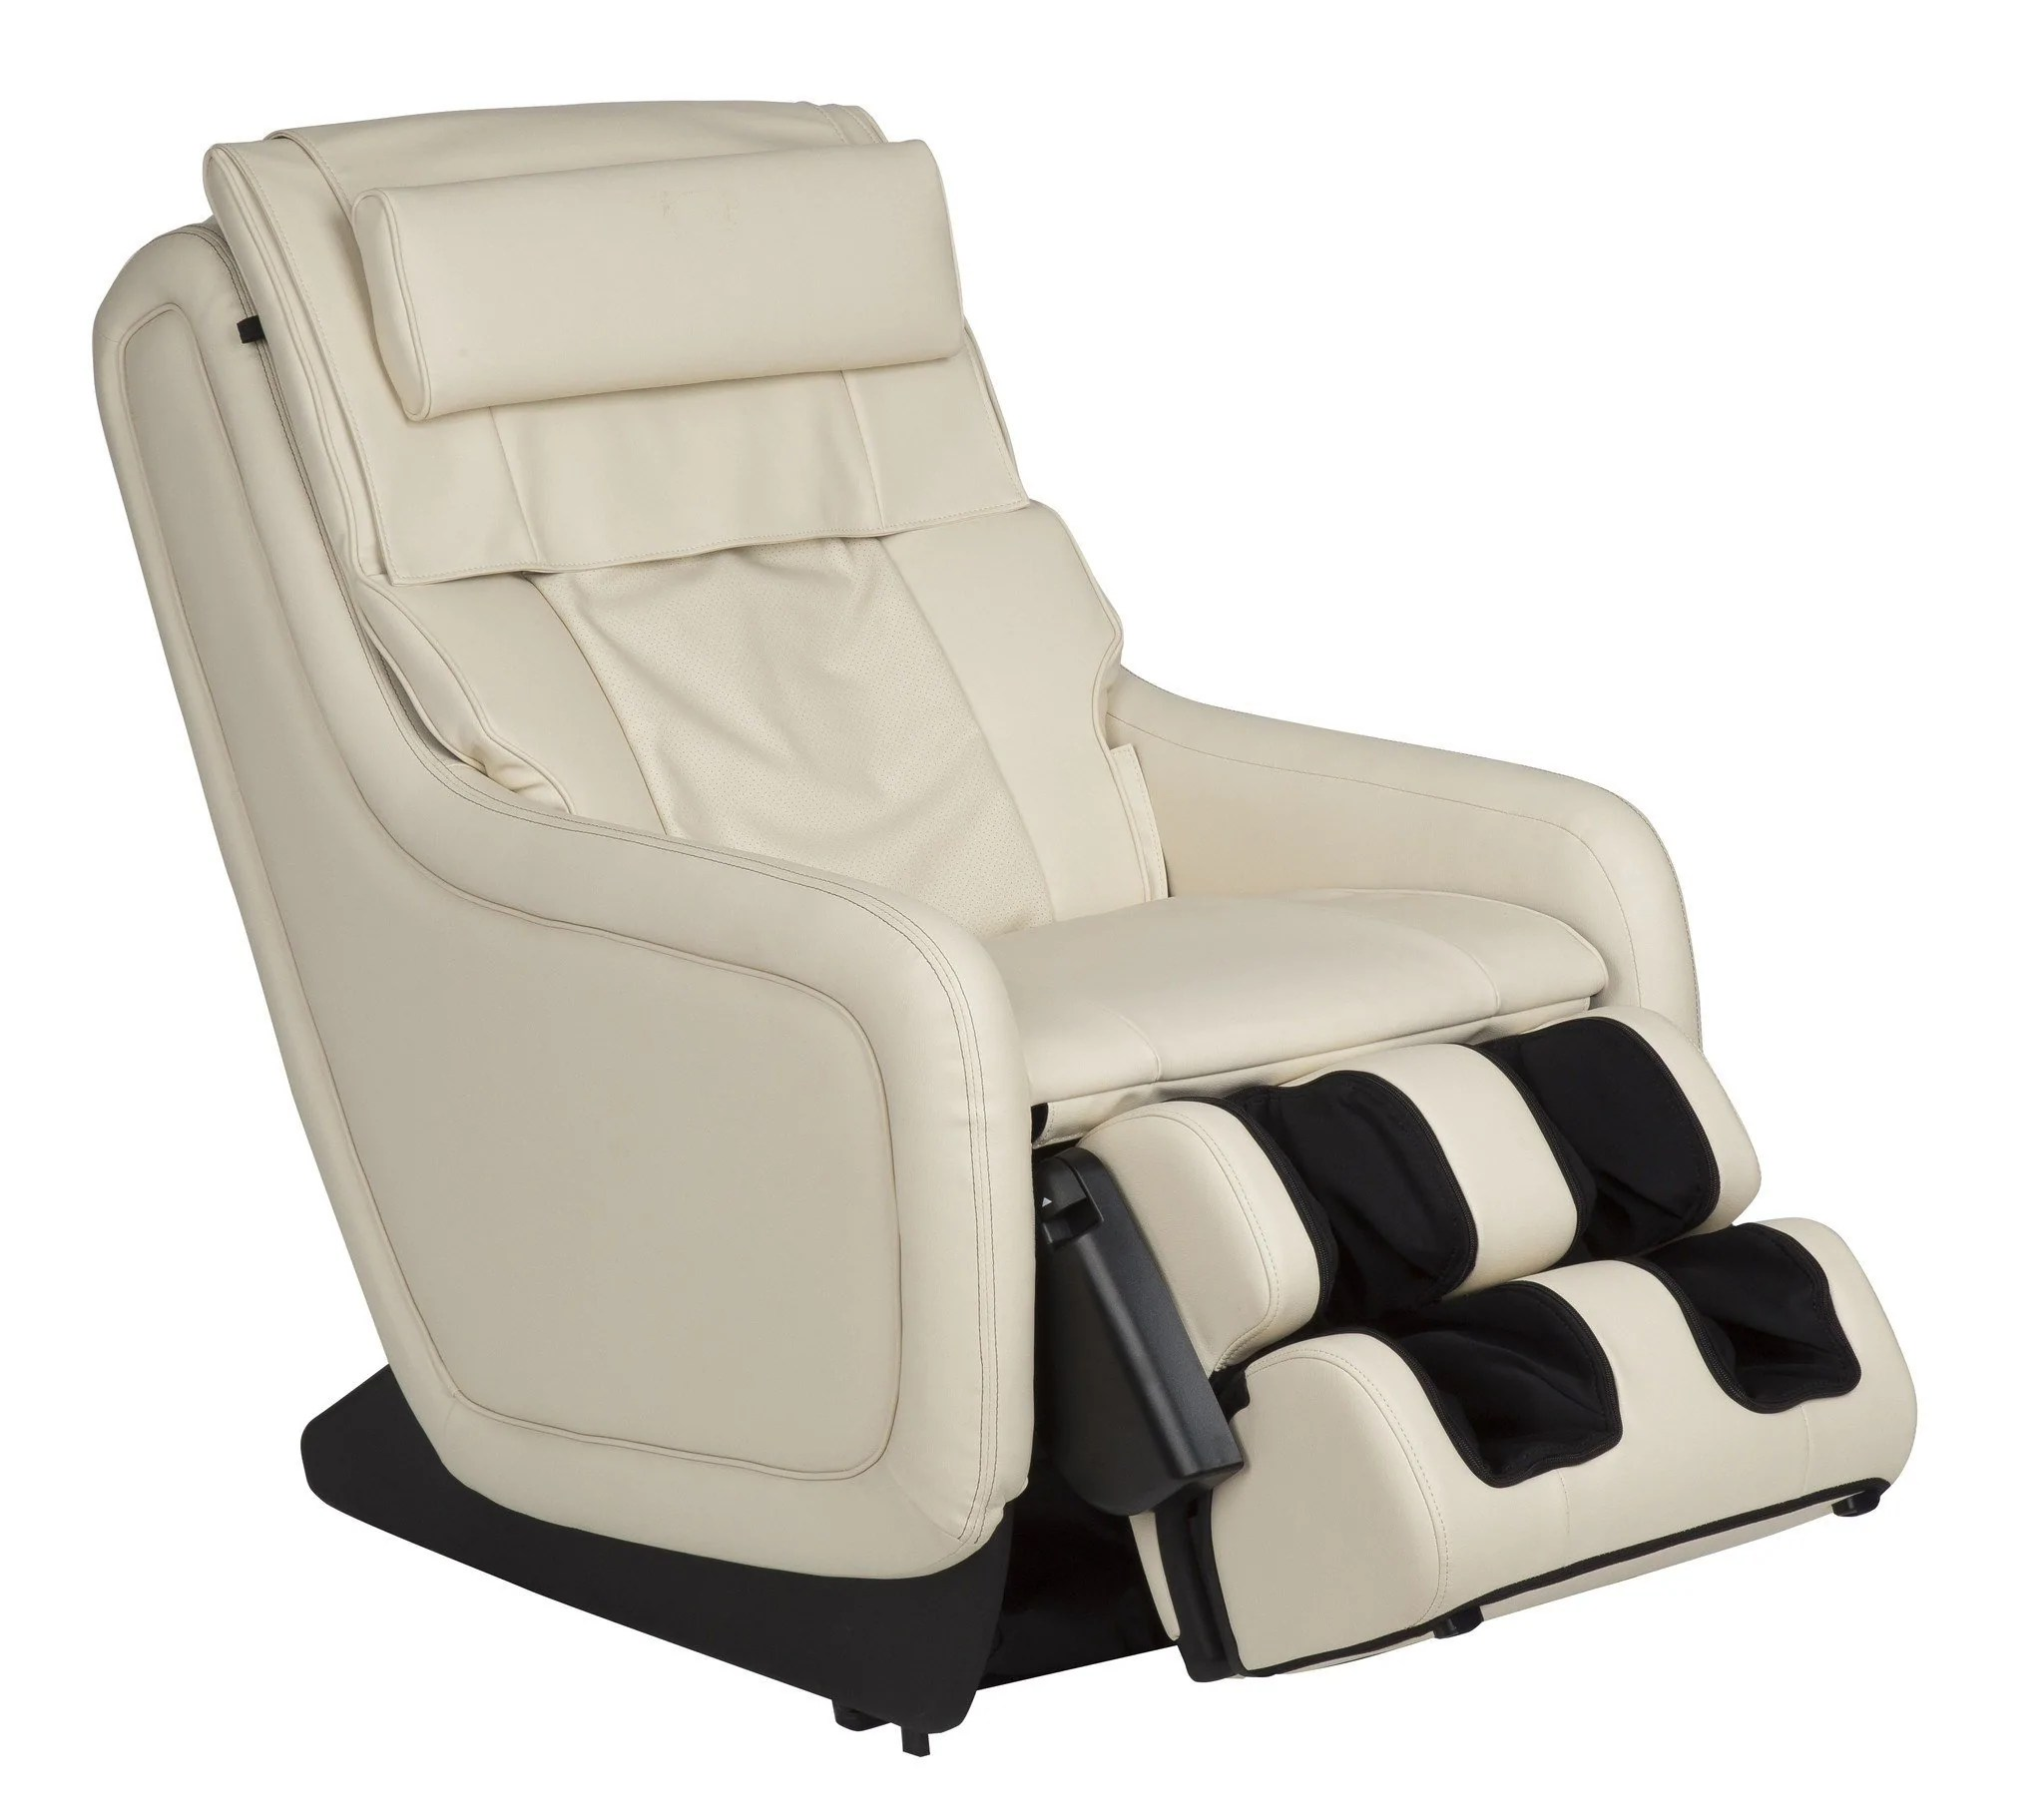 used massage chairs for sale swivel chair technology human touch zerog 5 holiday on now